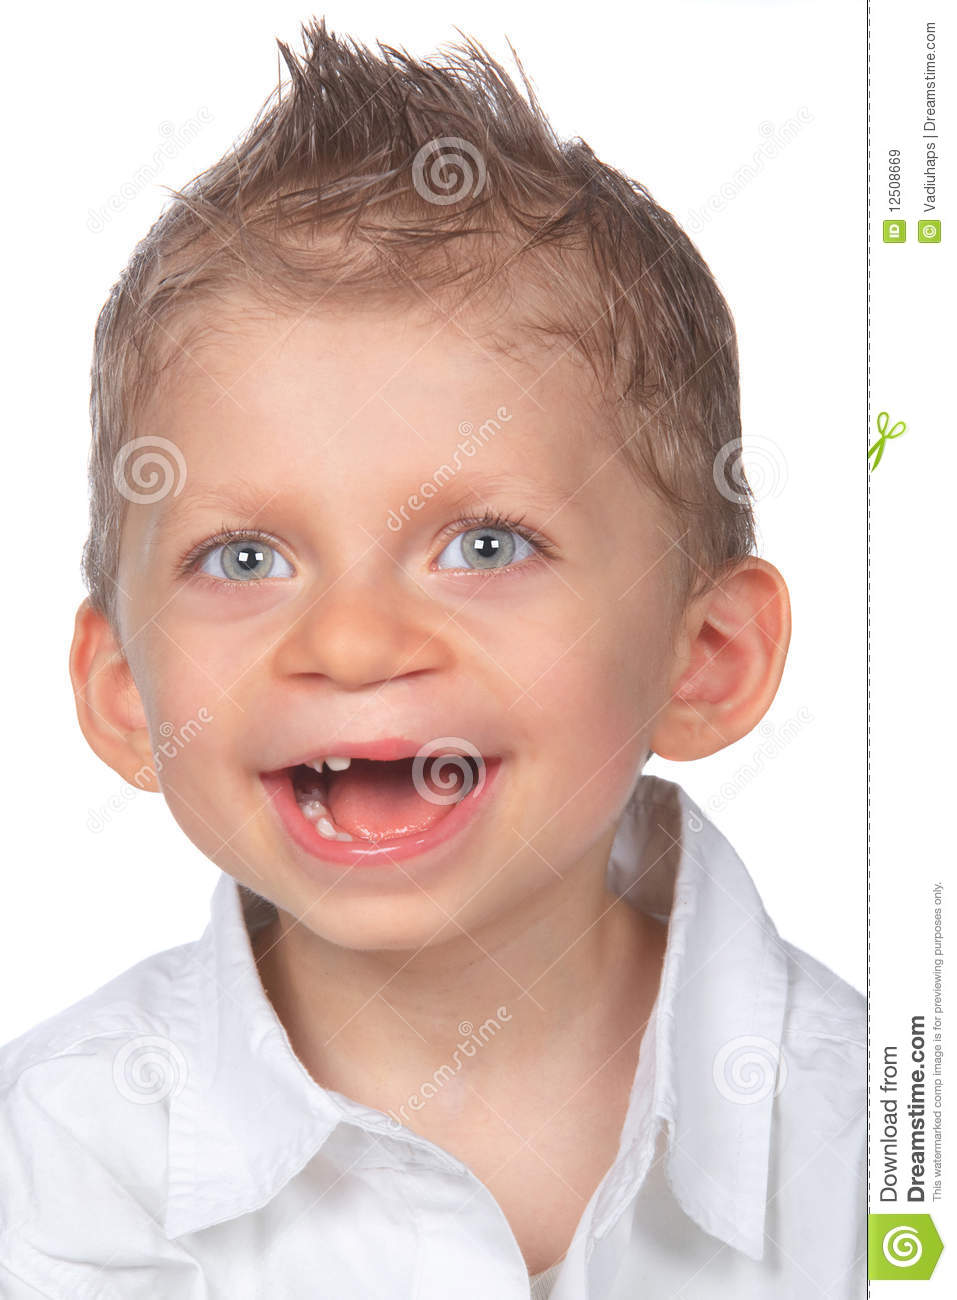 funny boy Happy cheerful boy laughing vector illustration of a little kid face portrait of a  boy smiling on a white background download a free preview or.